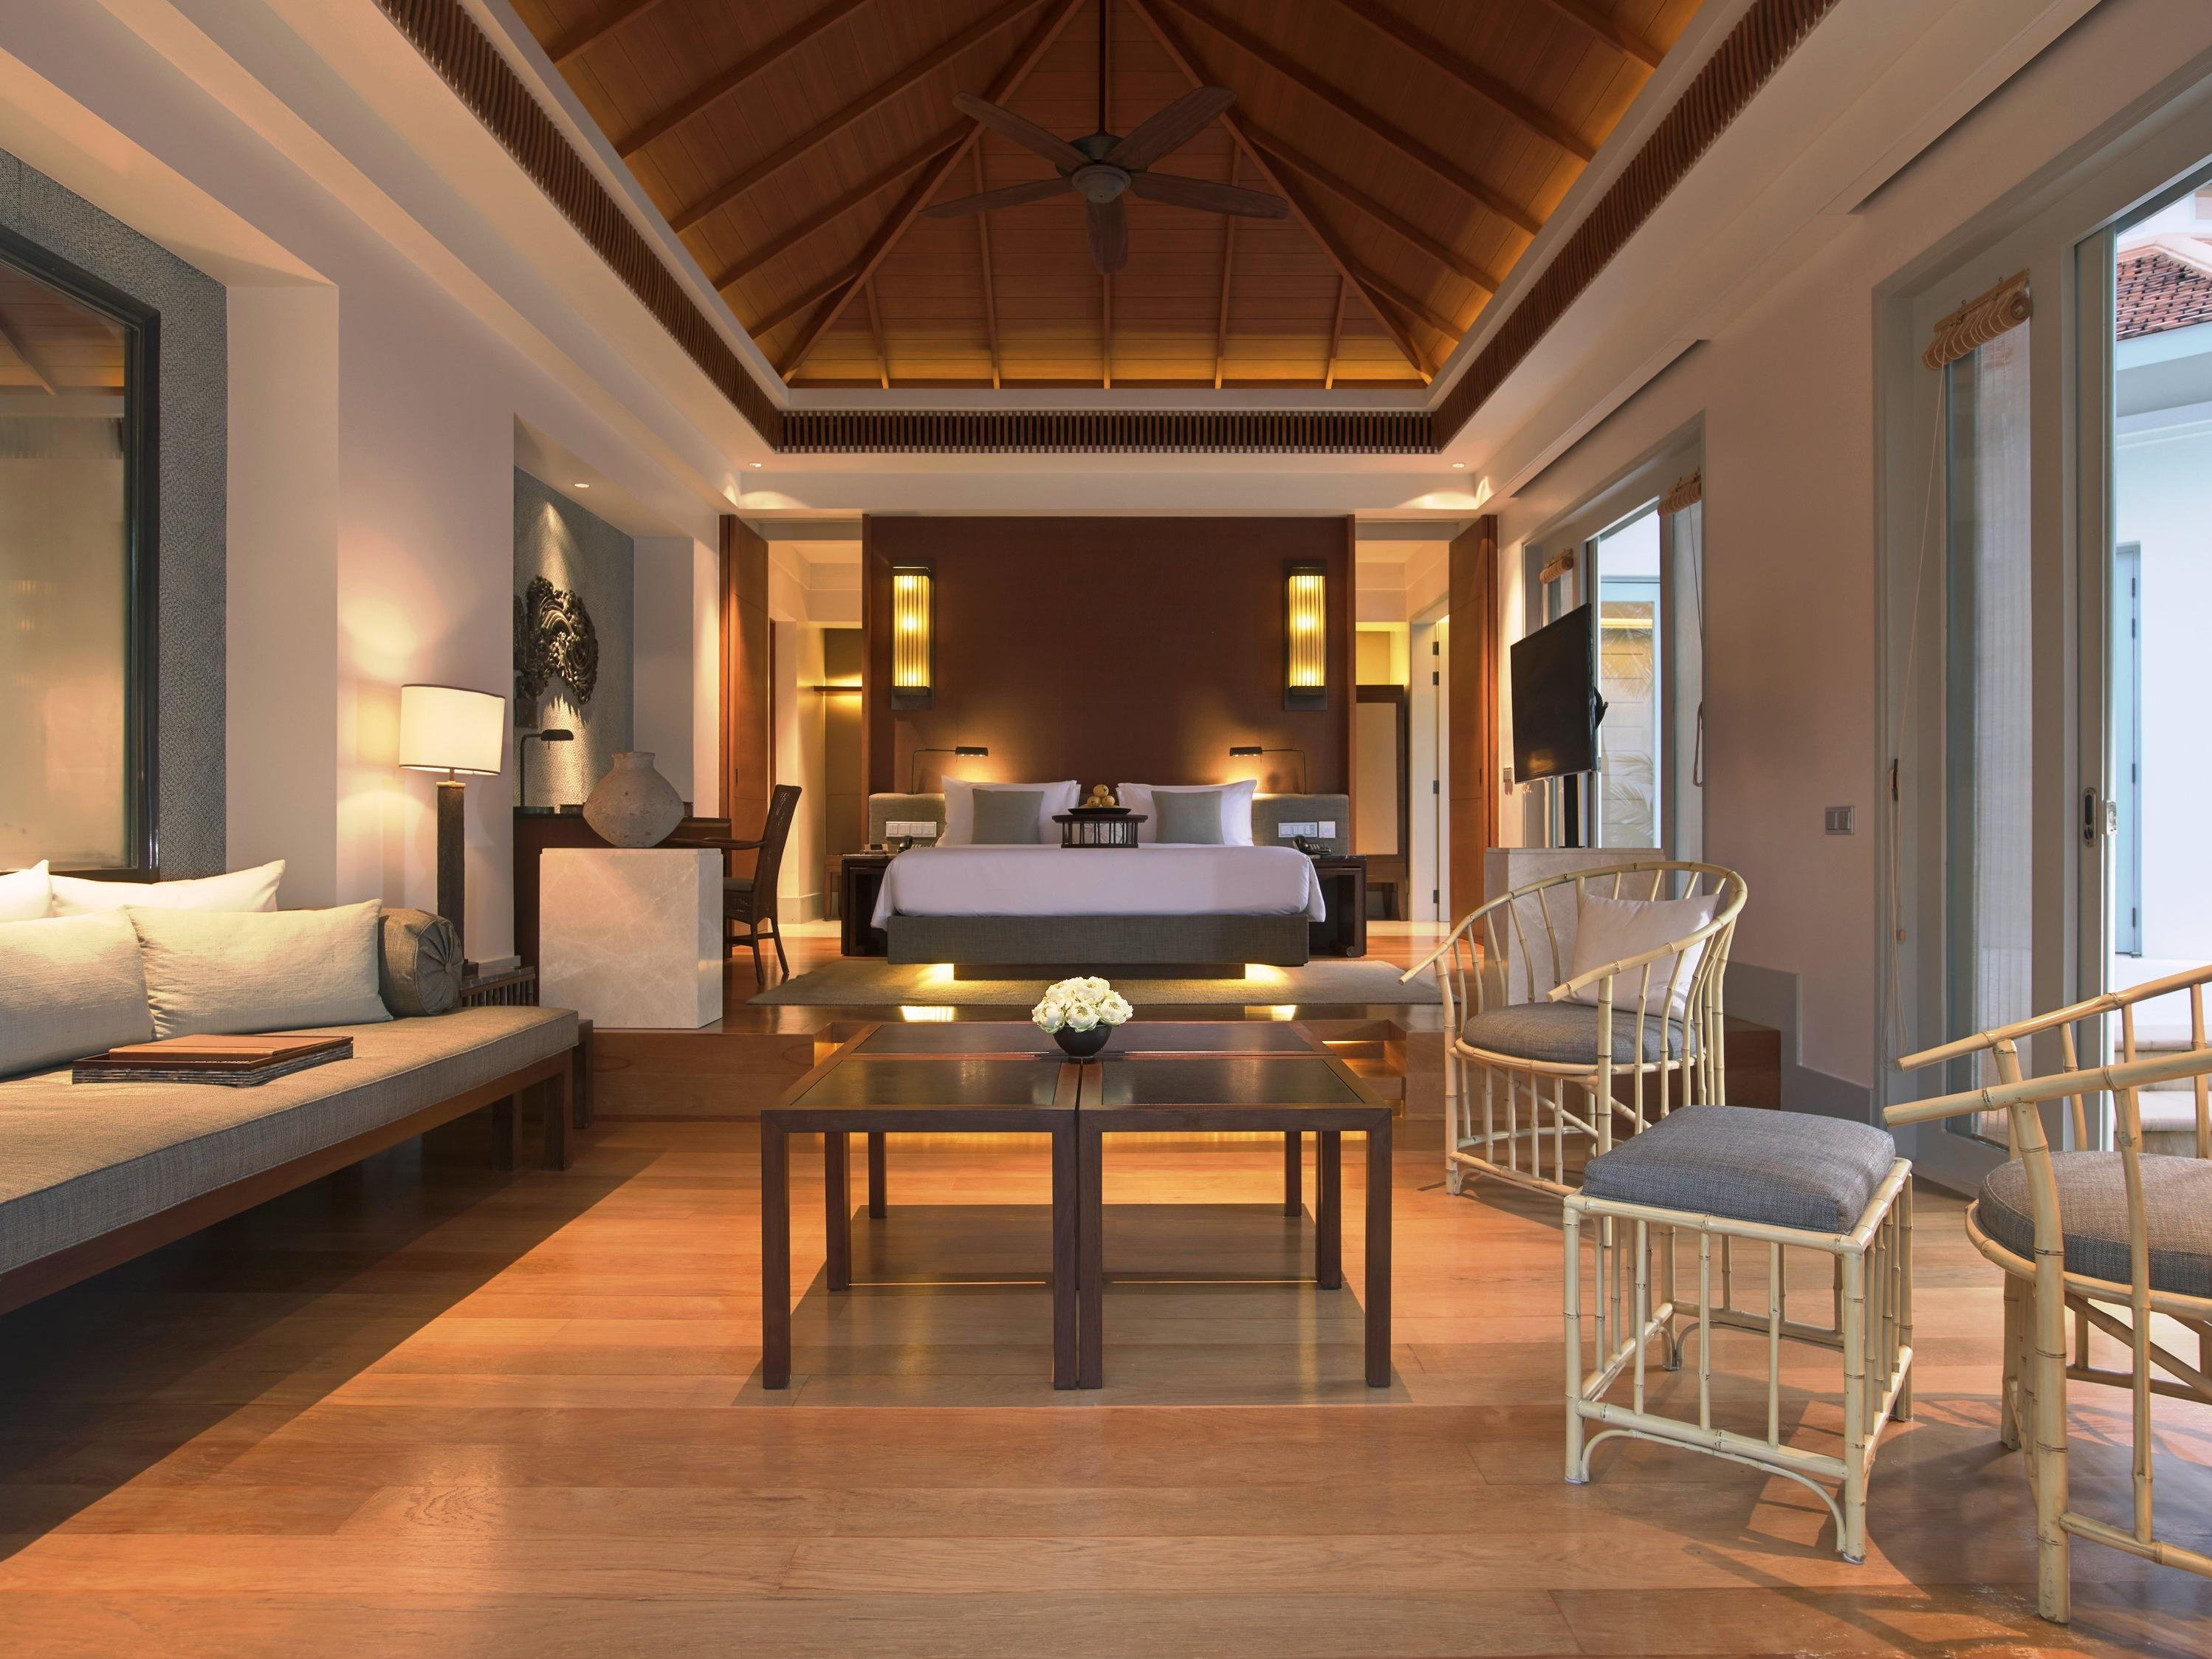 Amatara Wellness Resort - Ocean View Pool Villa interior